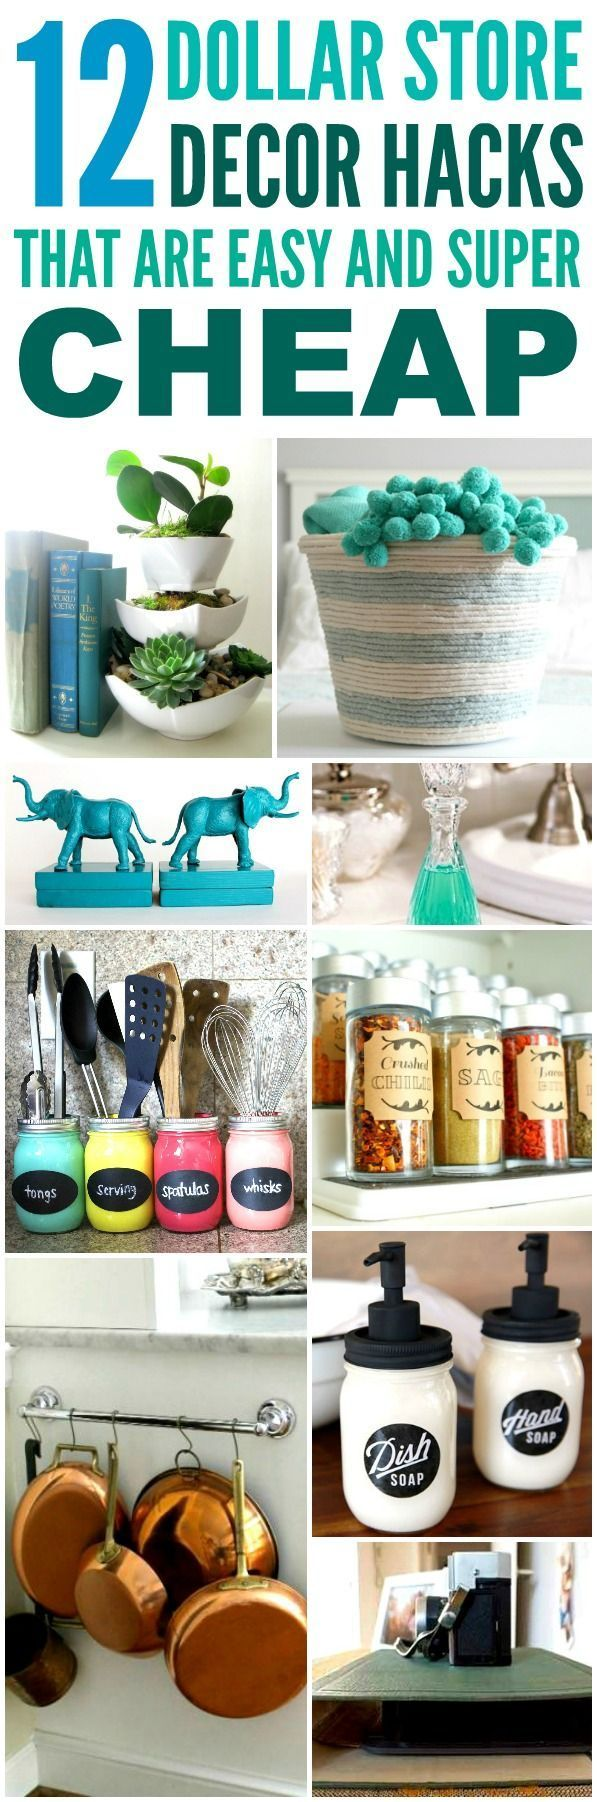 dollar store decorating hacks best 25 dollar decorating ideas on 10802